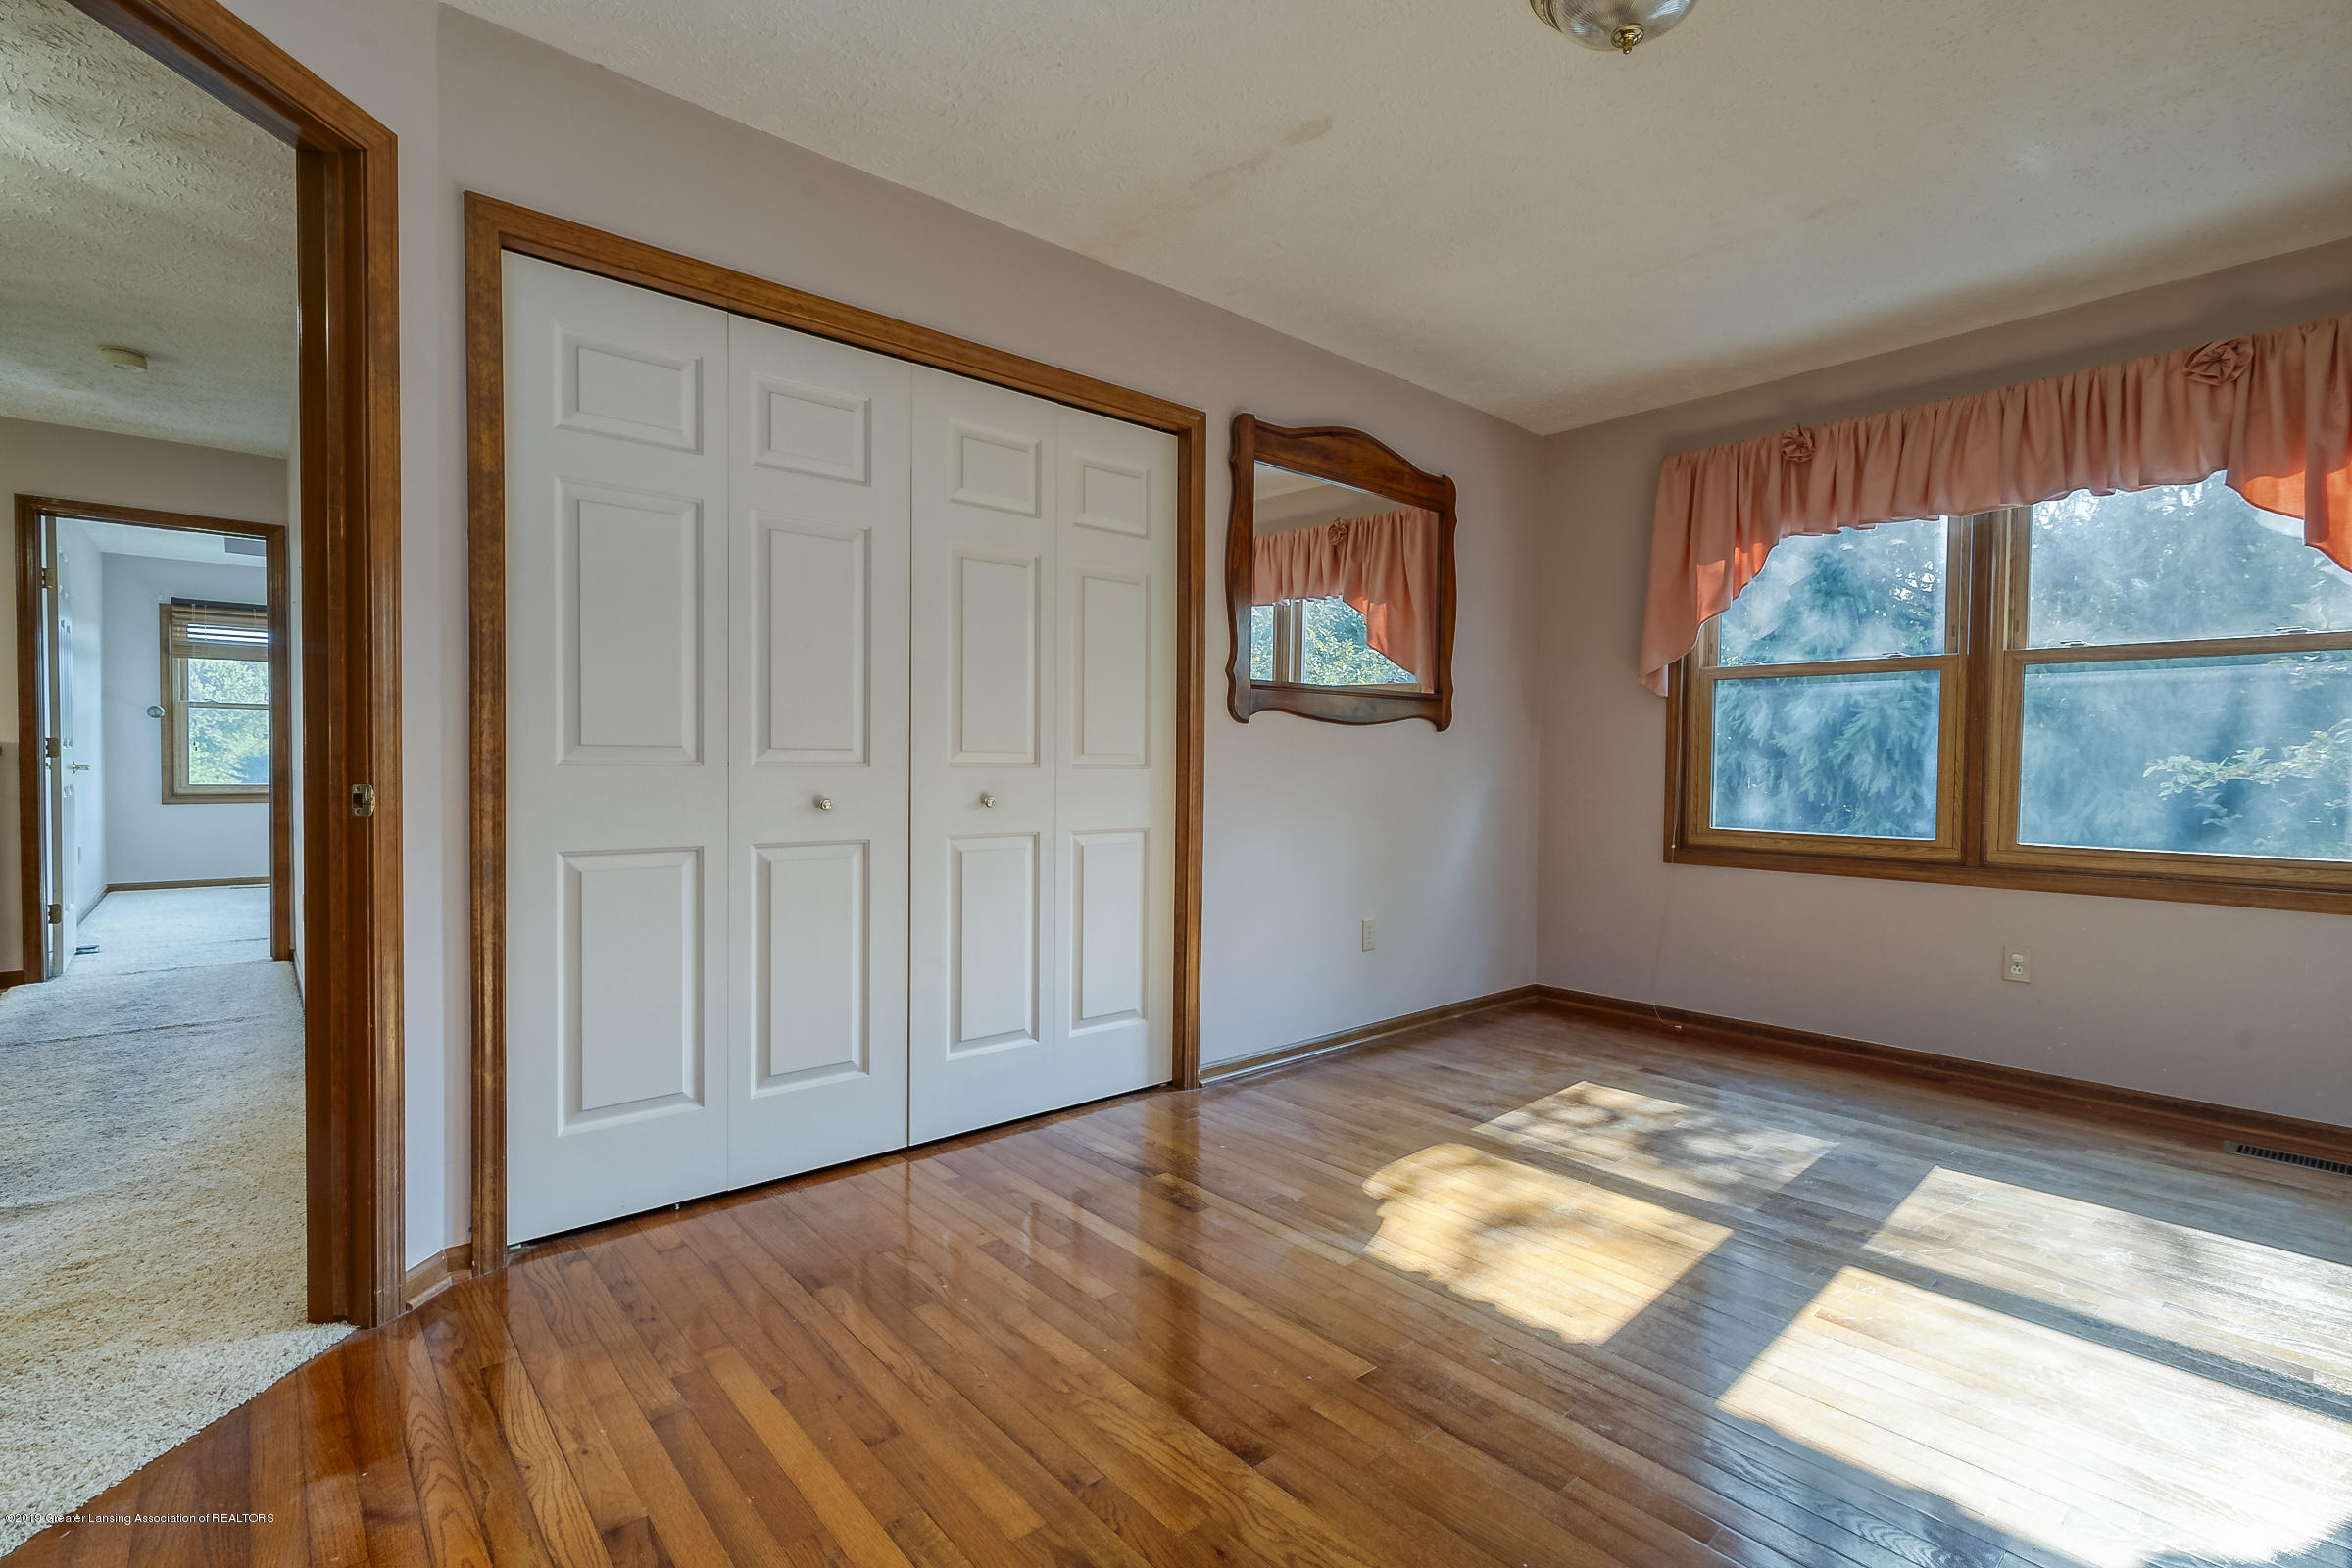 2343 Chisholm Ct - BEDROOM - 21